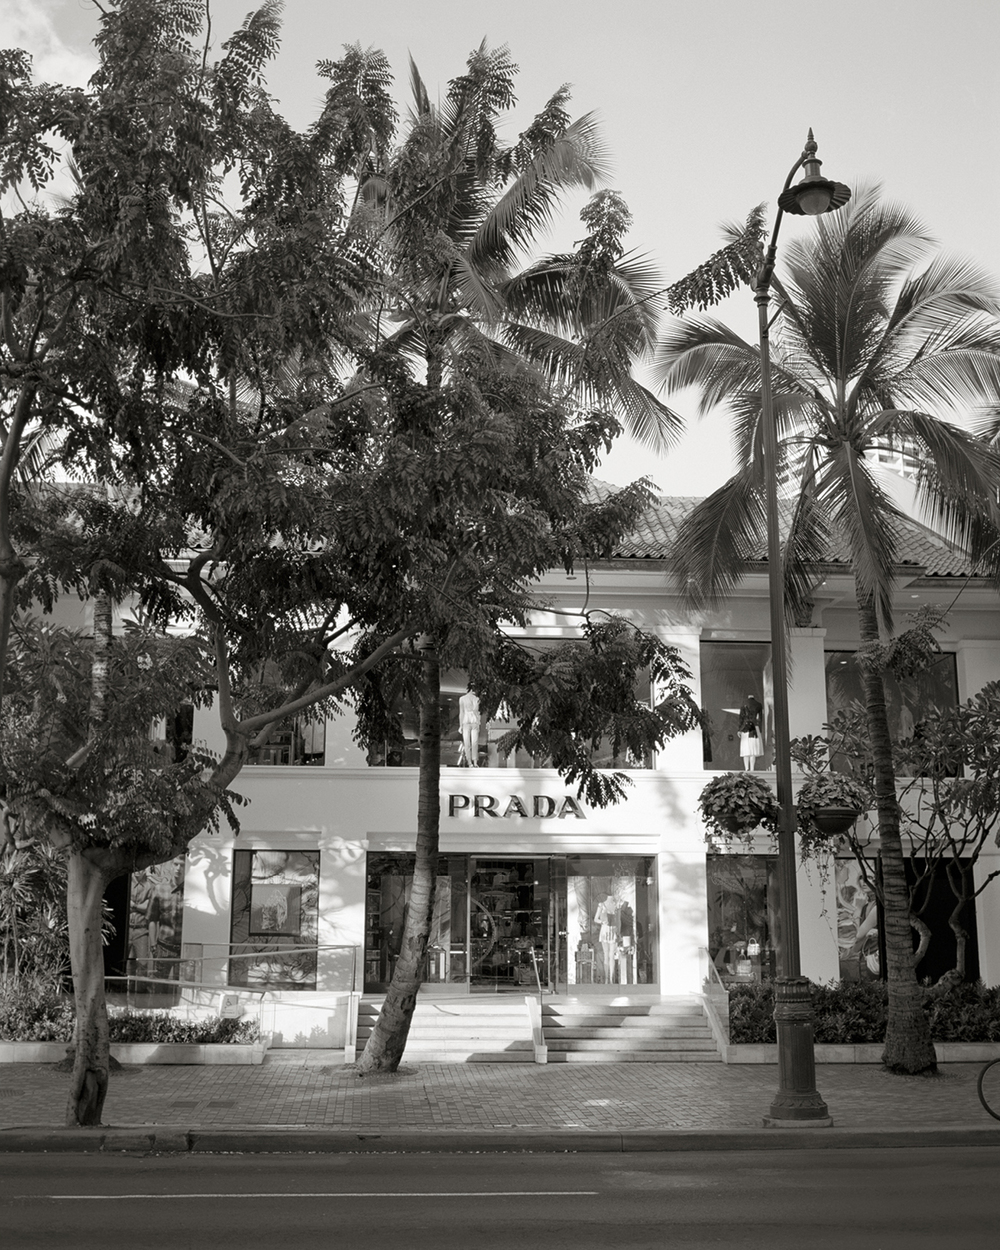 SHOPPING ALONG KALAKAUA AVENUE